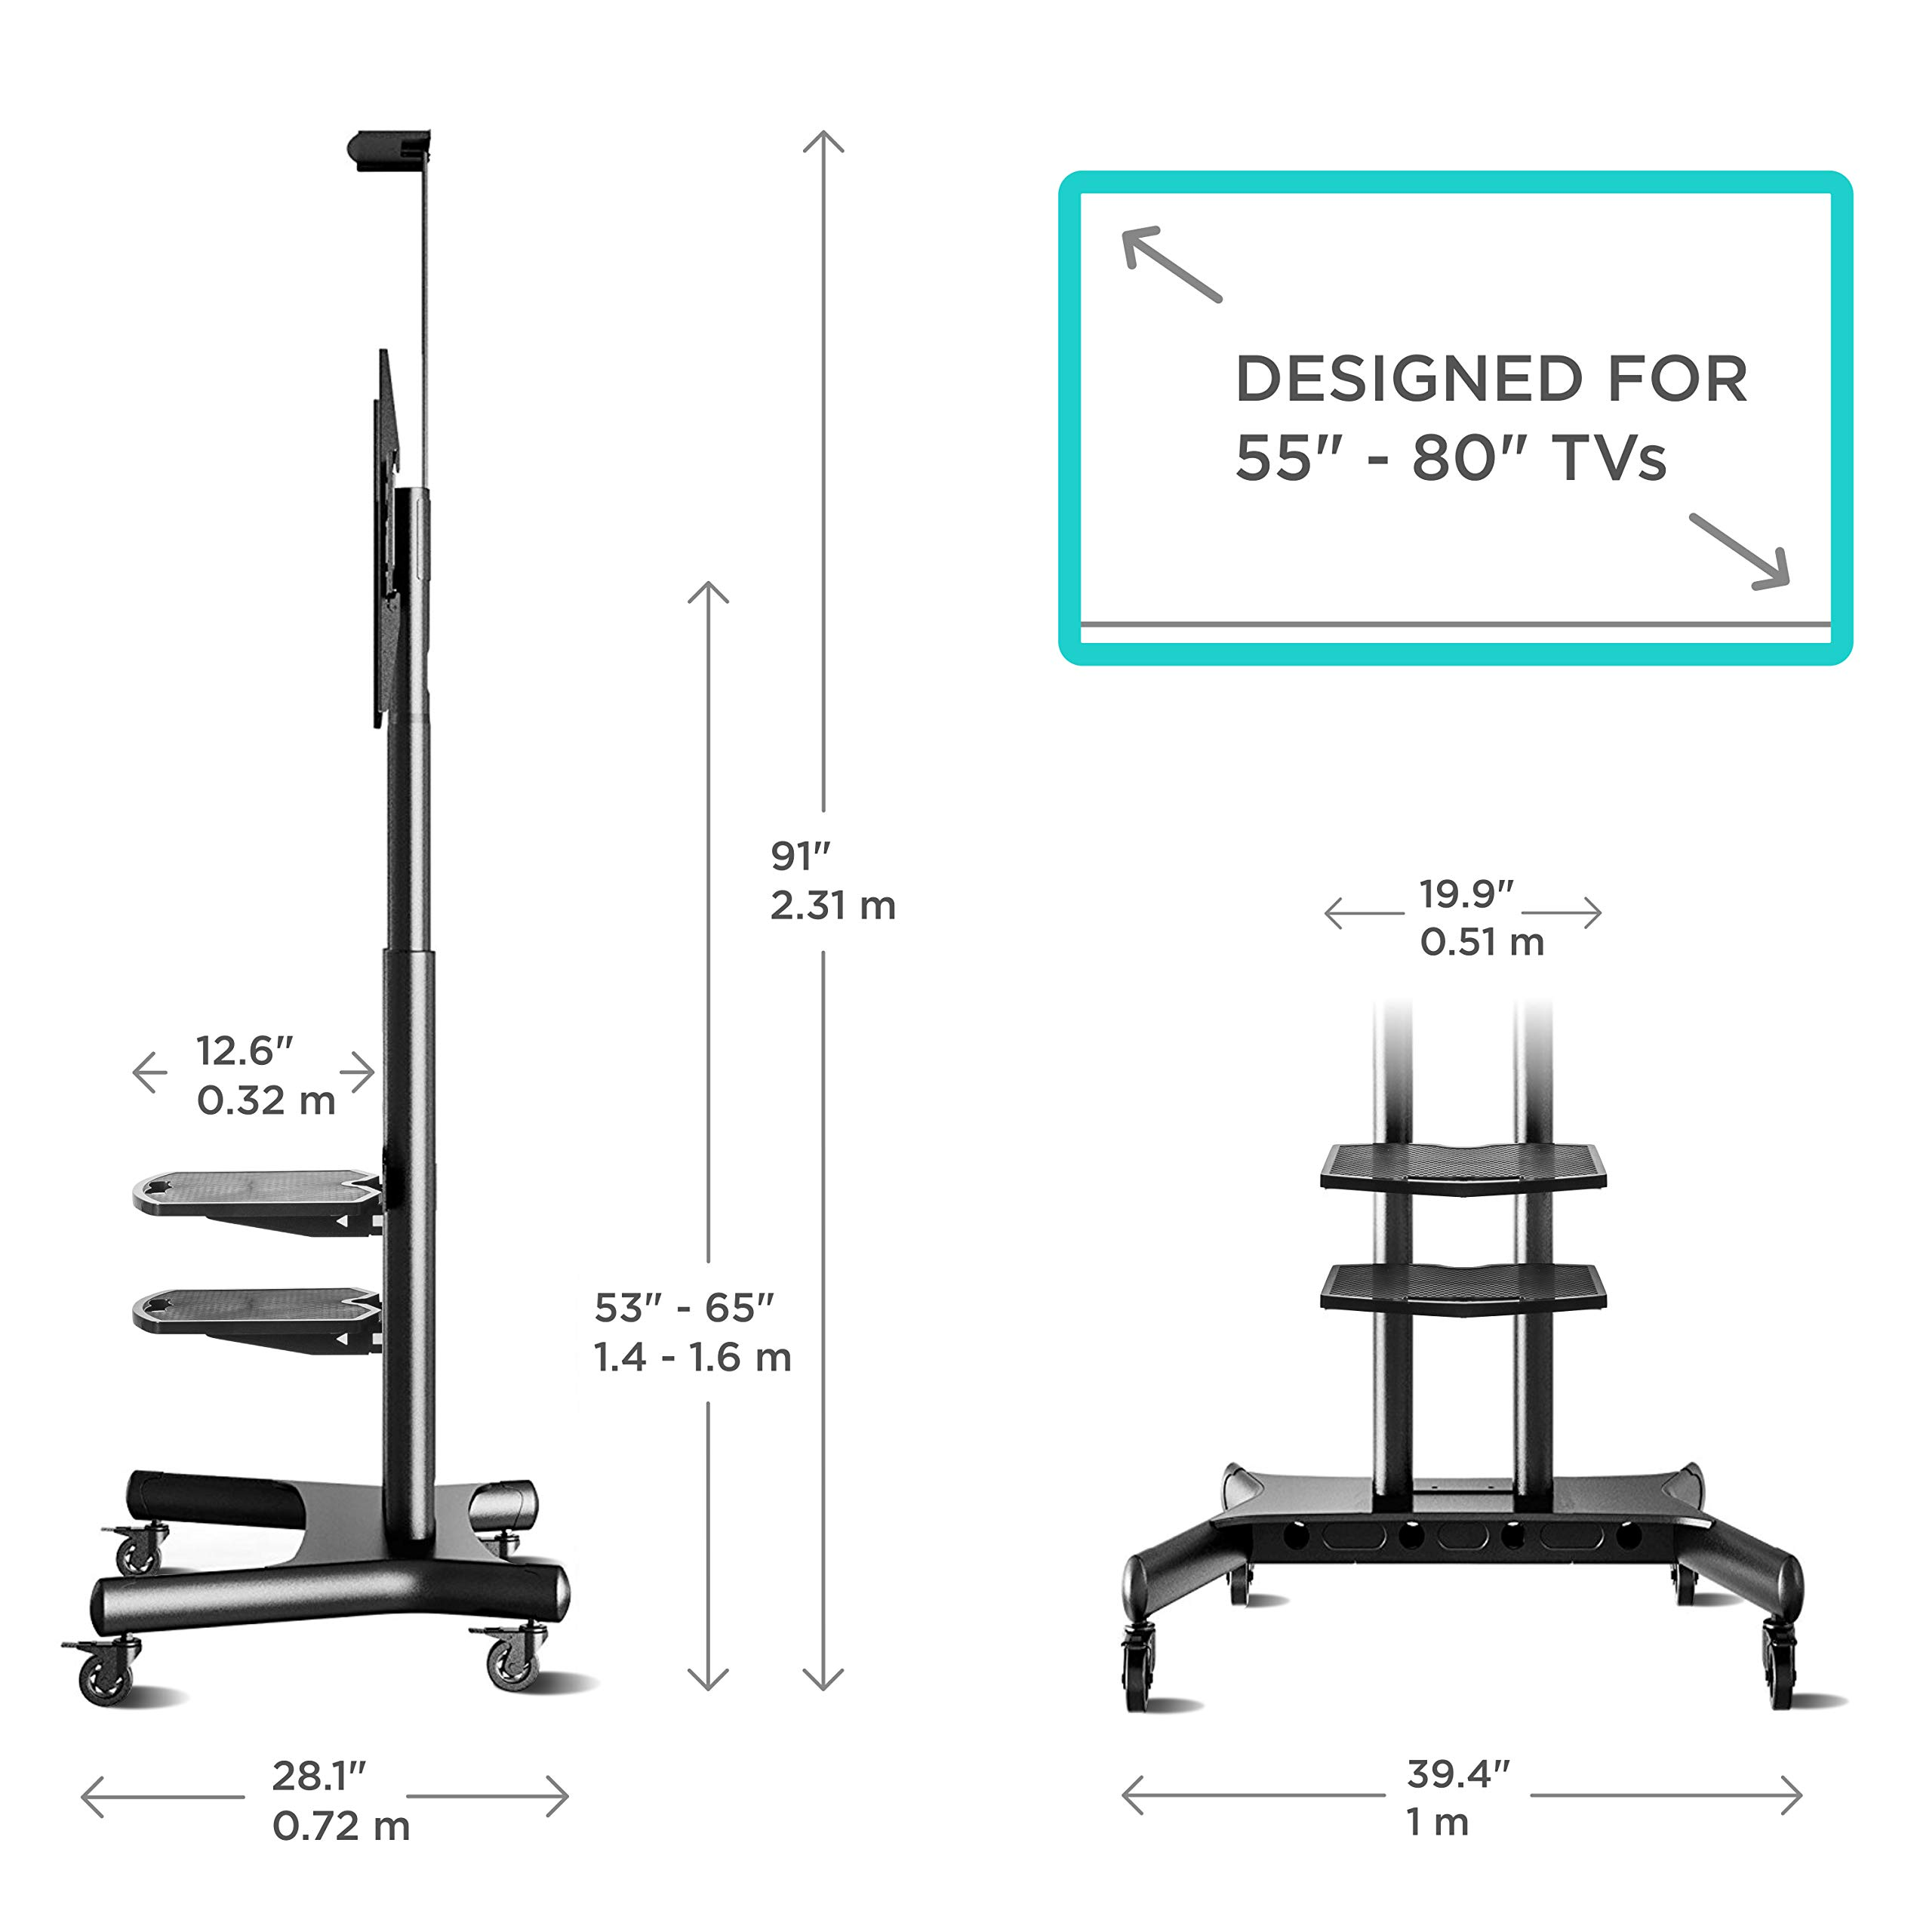 ONKRON Mobile TV Stand with Wheels Rolling TV Cart for 55 to 80 Inch LCD LED Flat Panel TVs (TS1881) by ONKRON (Image #3)